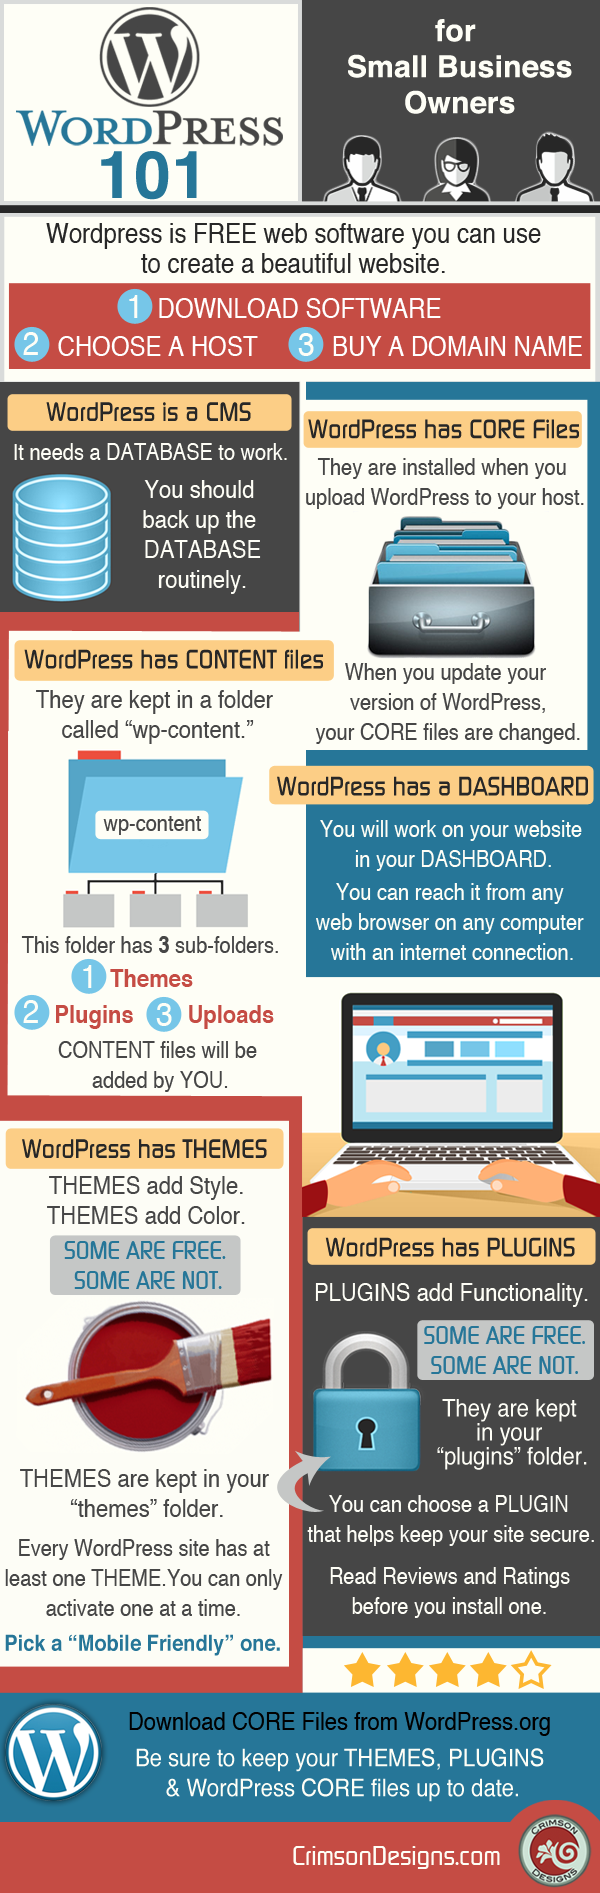 WordPress 101 for Small Business Owners - Infographic